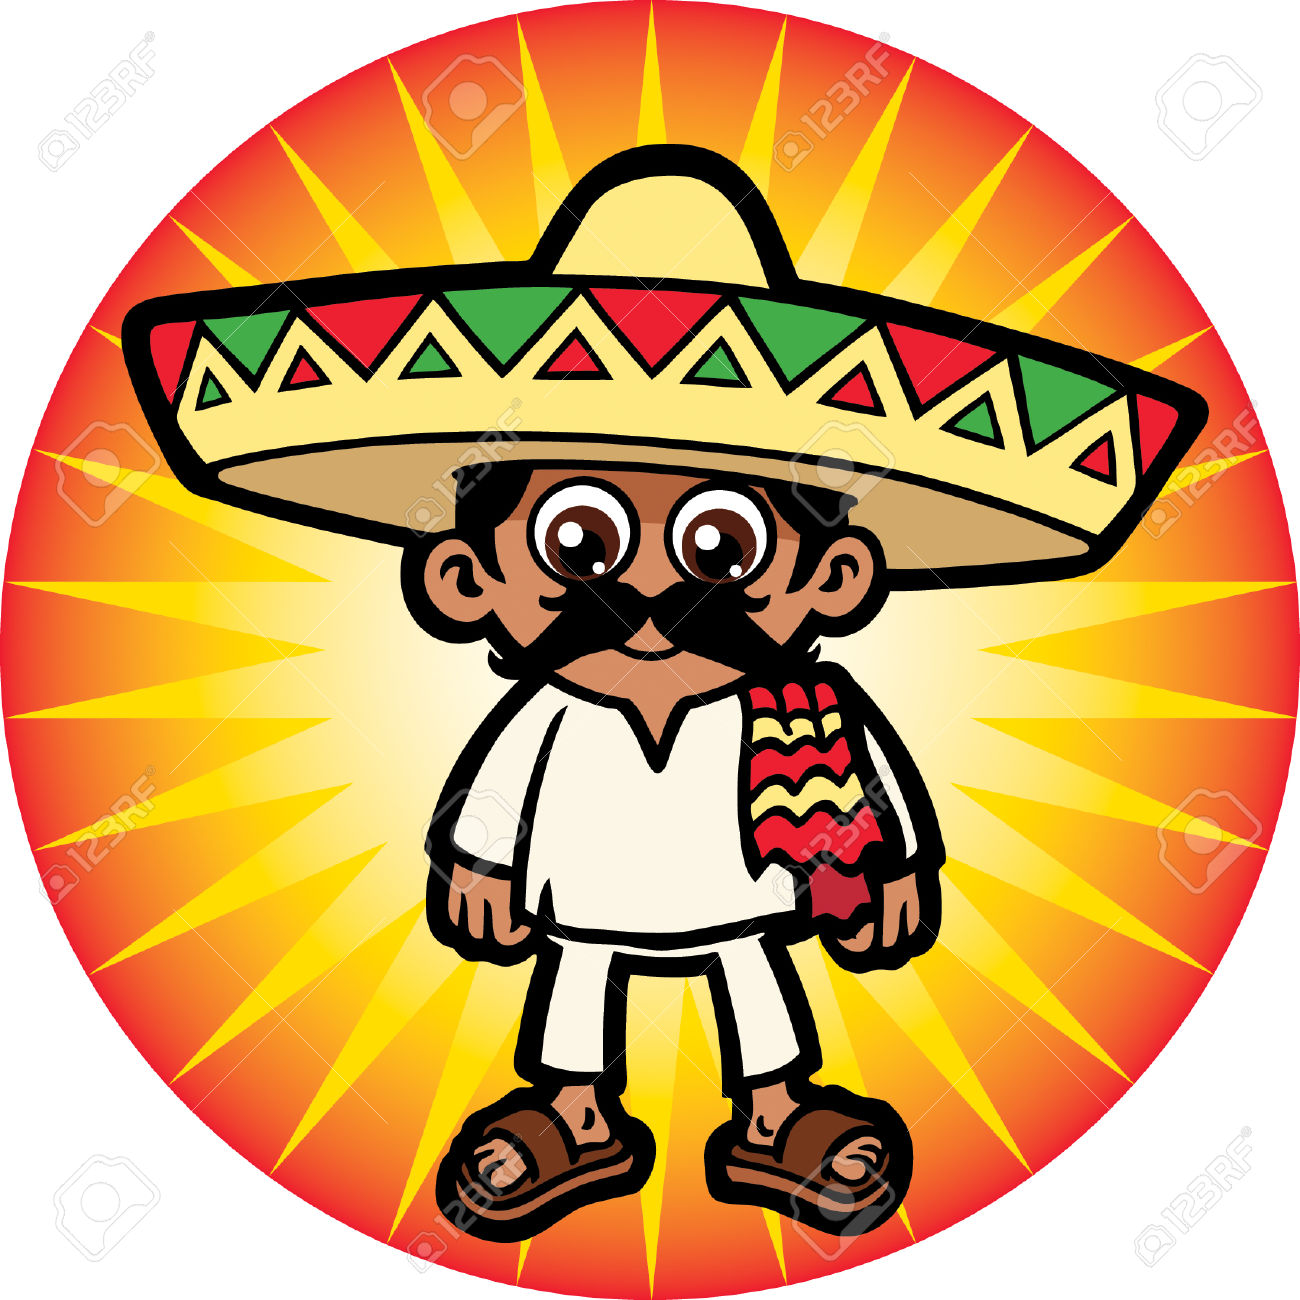 Pictures Of Sombreros